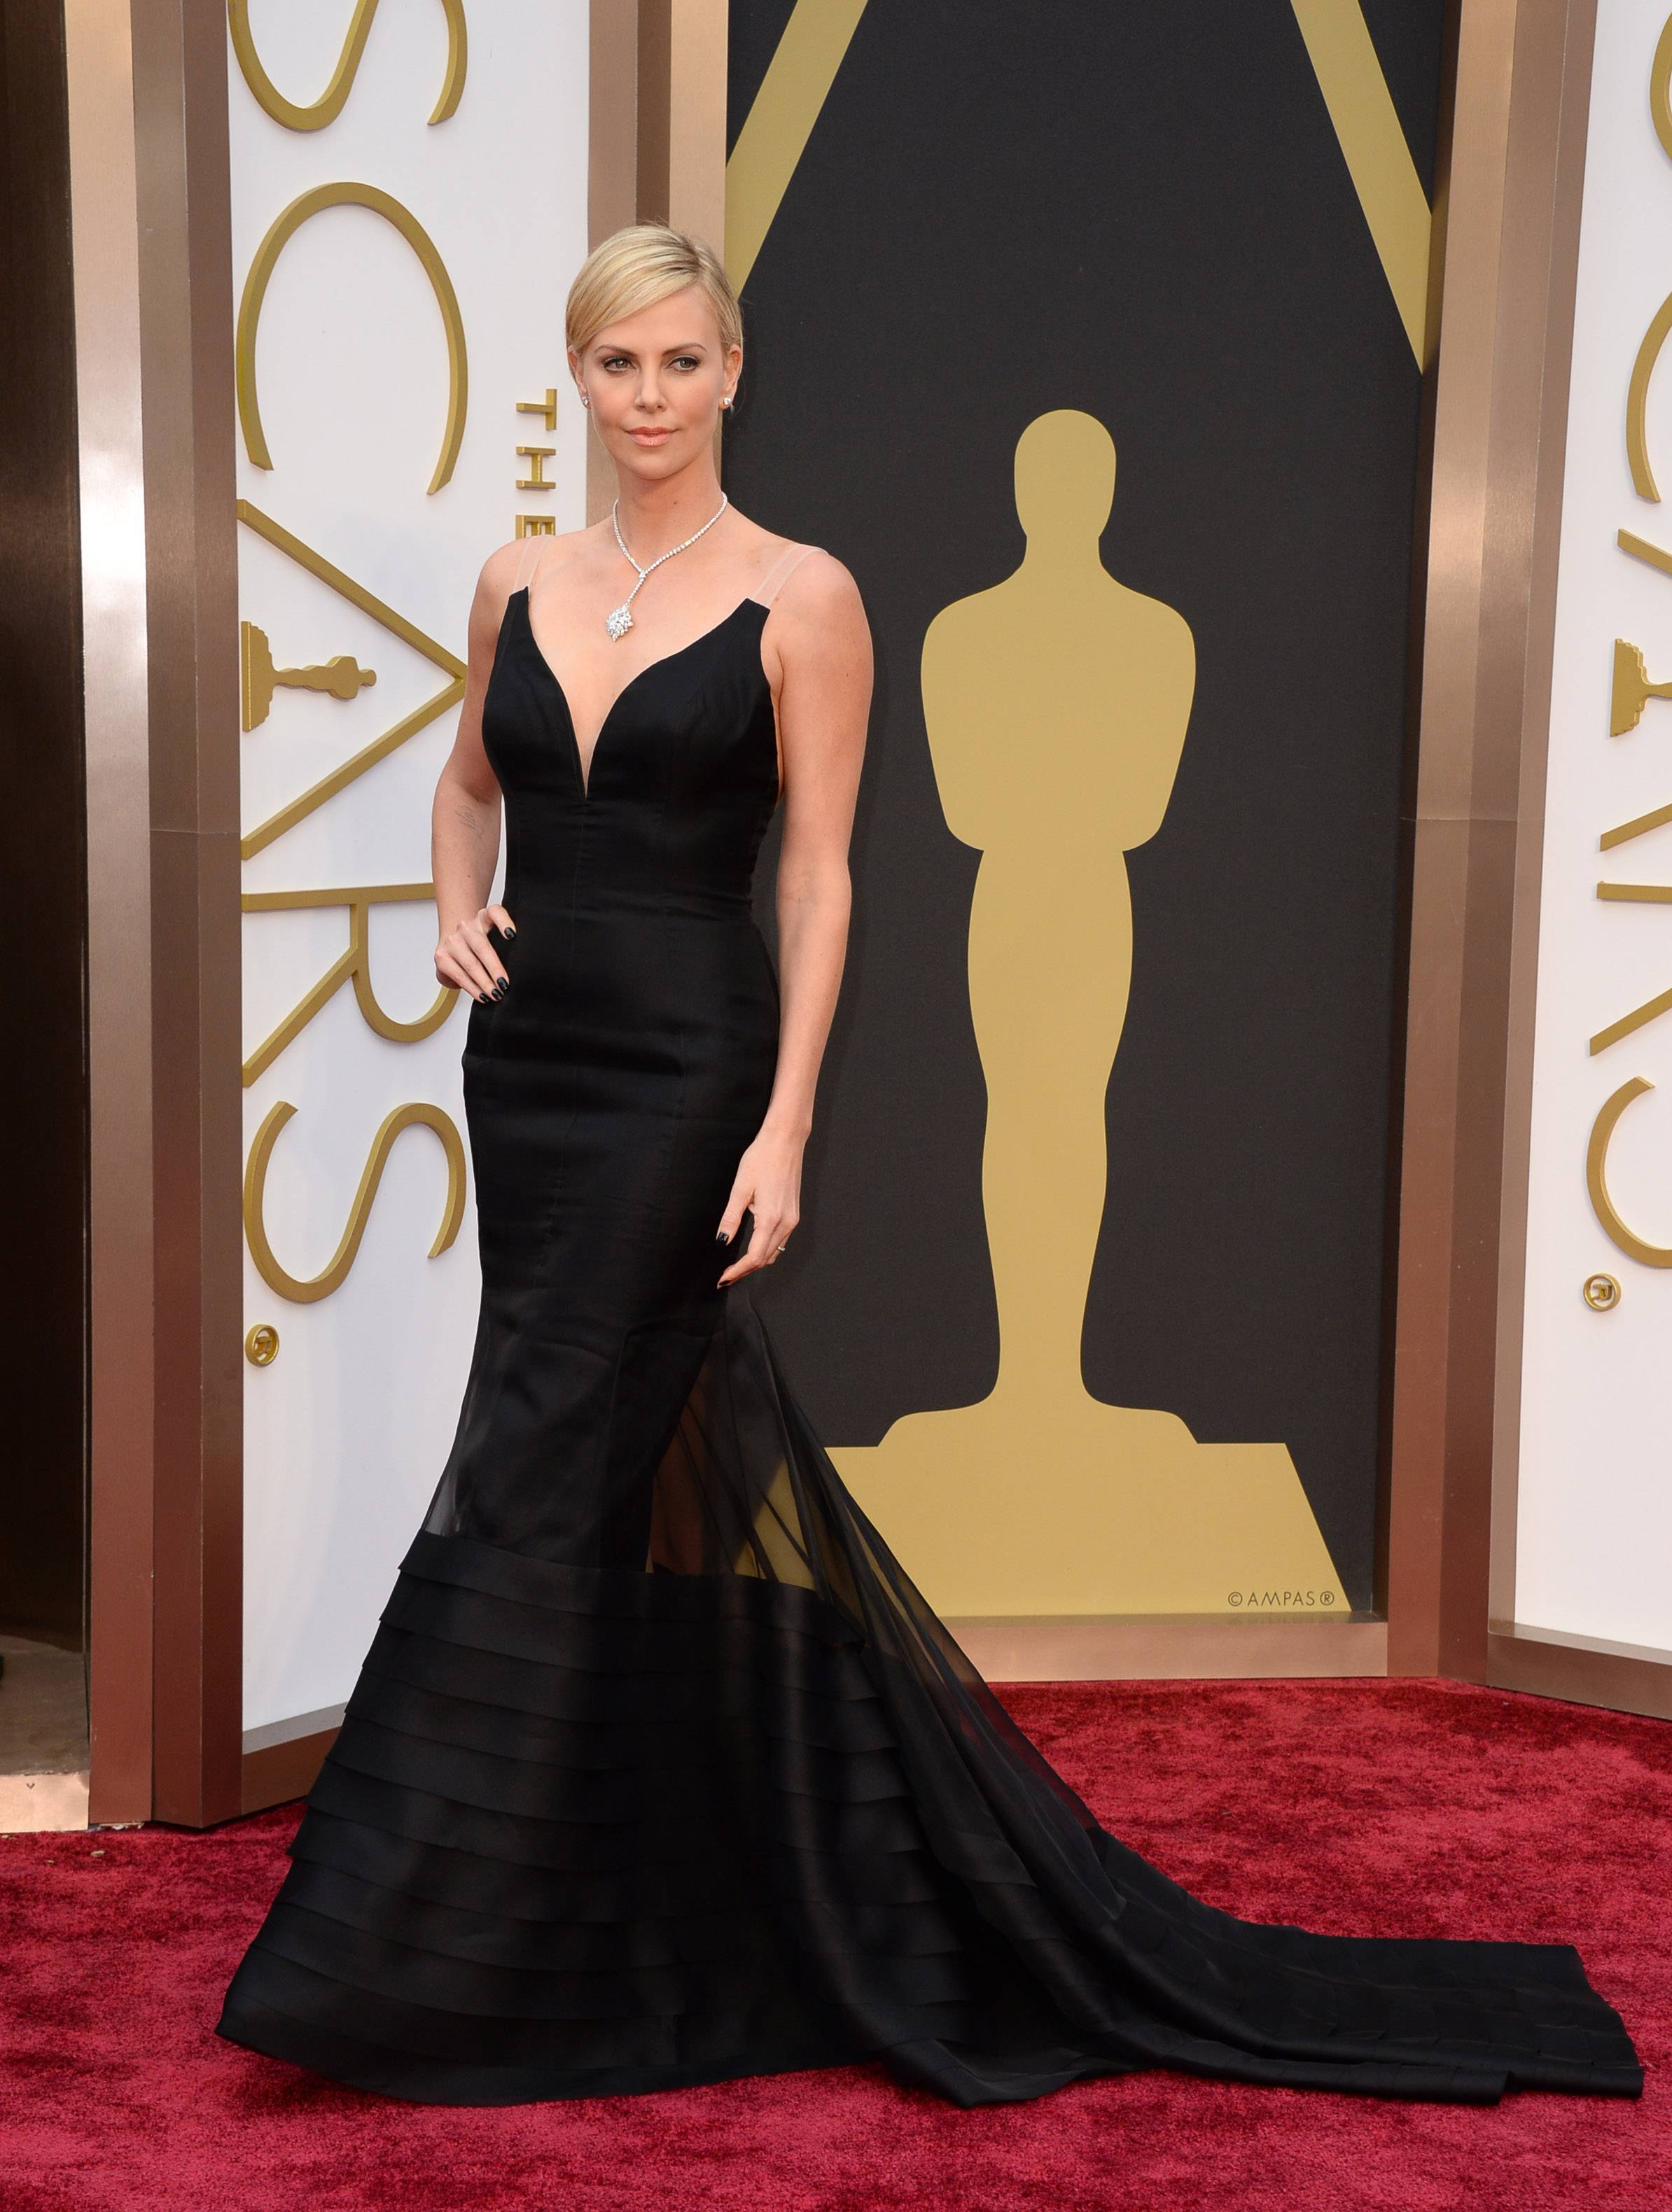 Oscar winner Charlize Theron puts some drama into her little black dress for Oscar night.